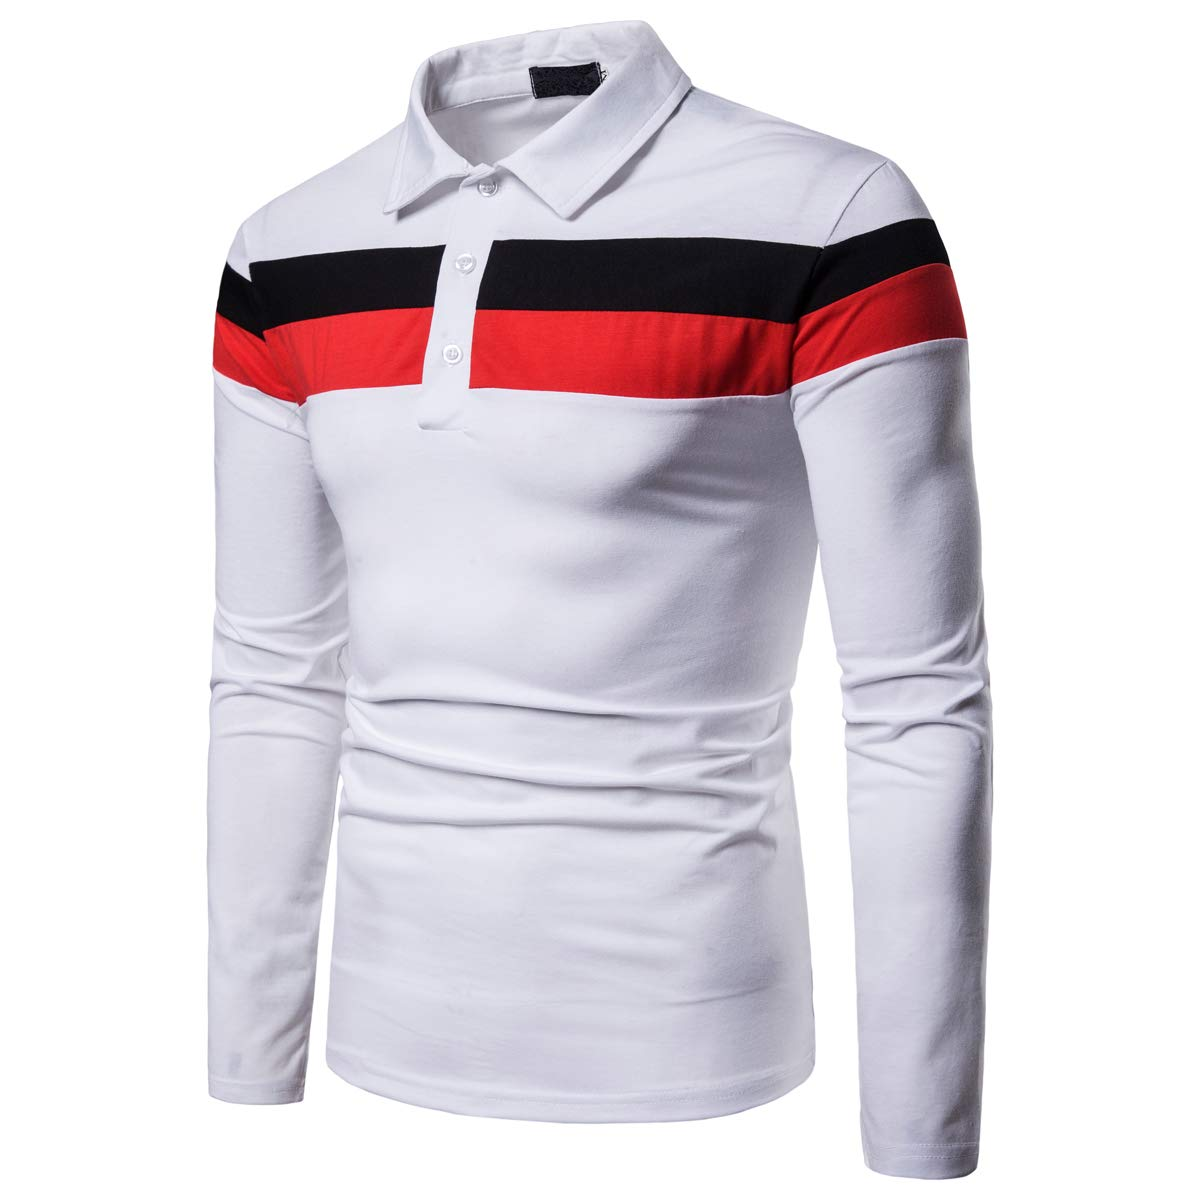 Feefine Mens Paneled Polo Shirt Casual Long Sleeve Shirt Top Male Sweatshirt Pullover Crew-Neck Sweater Men Blouse Sweat